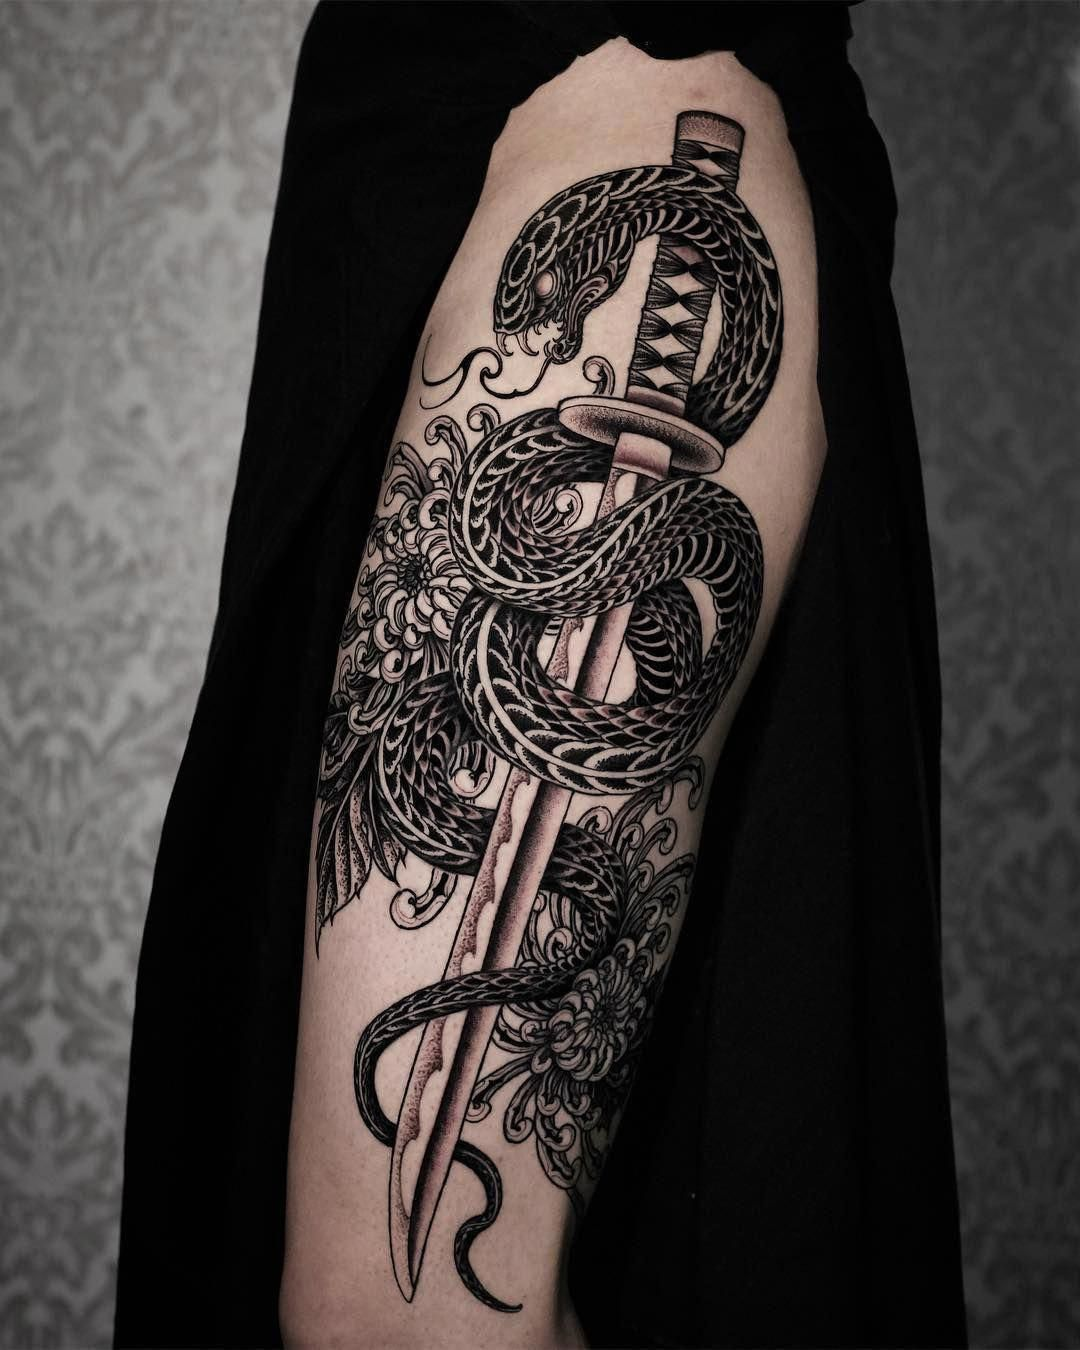 Snake tattoo design by Harlie Timmons on tattoos in 2020